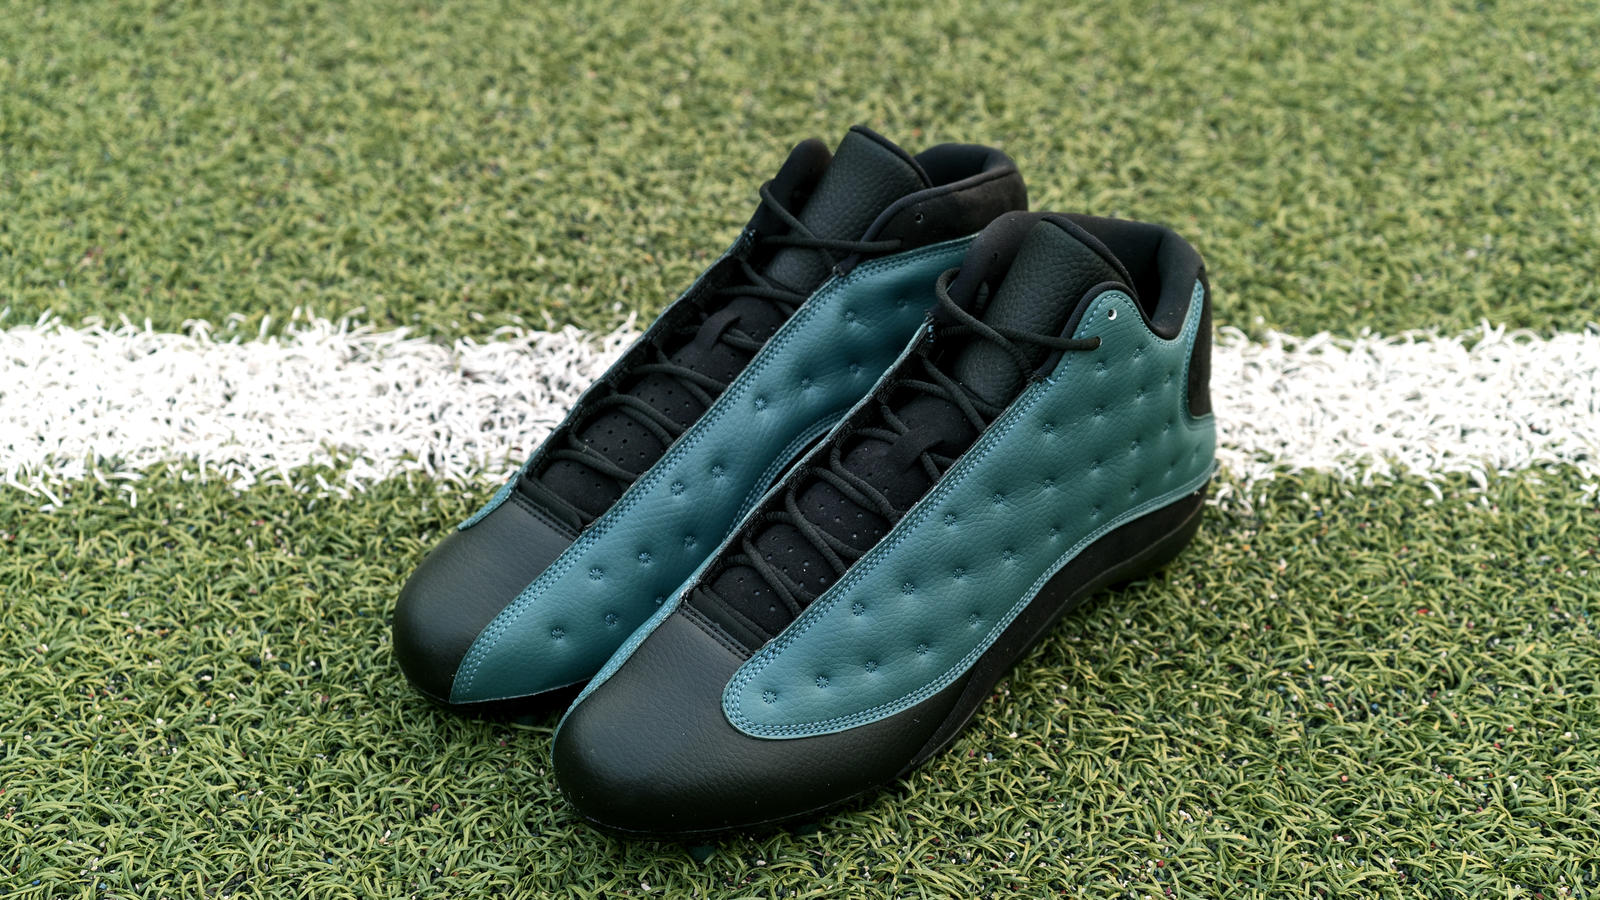 Jordan Brand's Football Roster Debuts New Air Jordan XIII PE Cleats 16